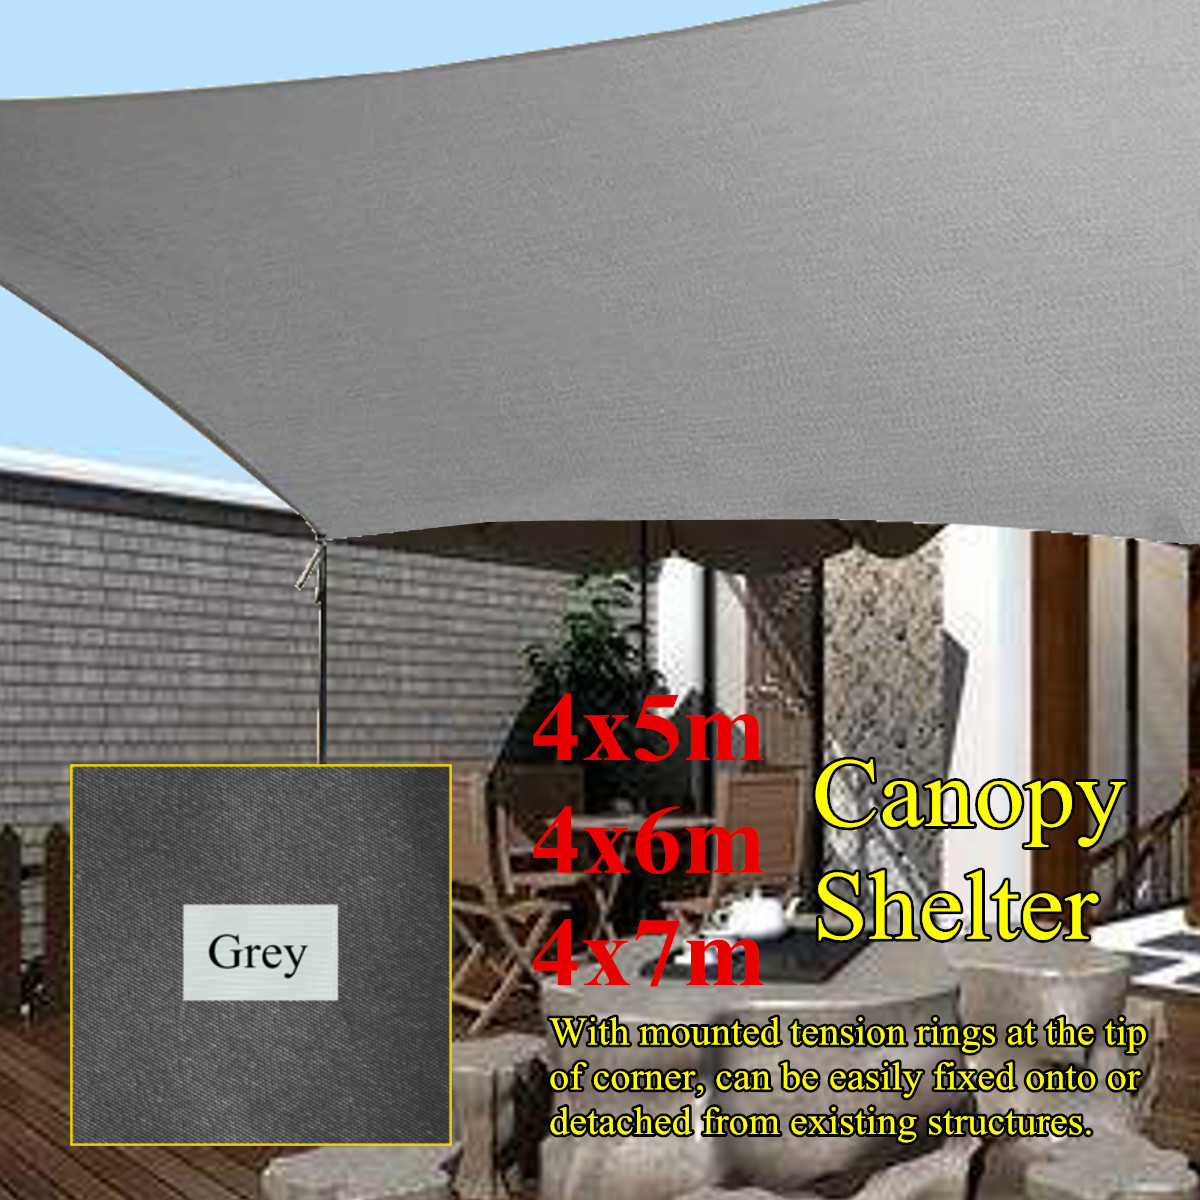 Waterproof Grey Sun Shade Canopies 4x5/6/7m Outdoor Camping Hiking Yard Garden Patio Shelters Cover Canopy Sun Block Cloth